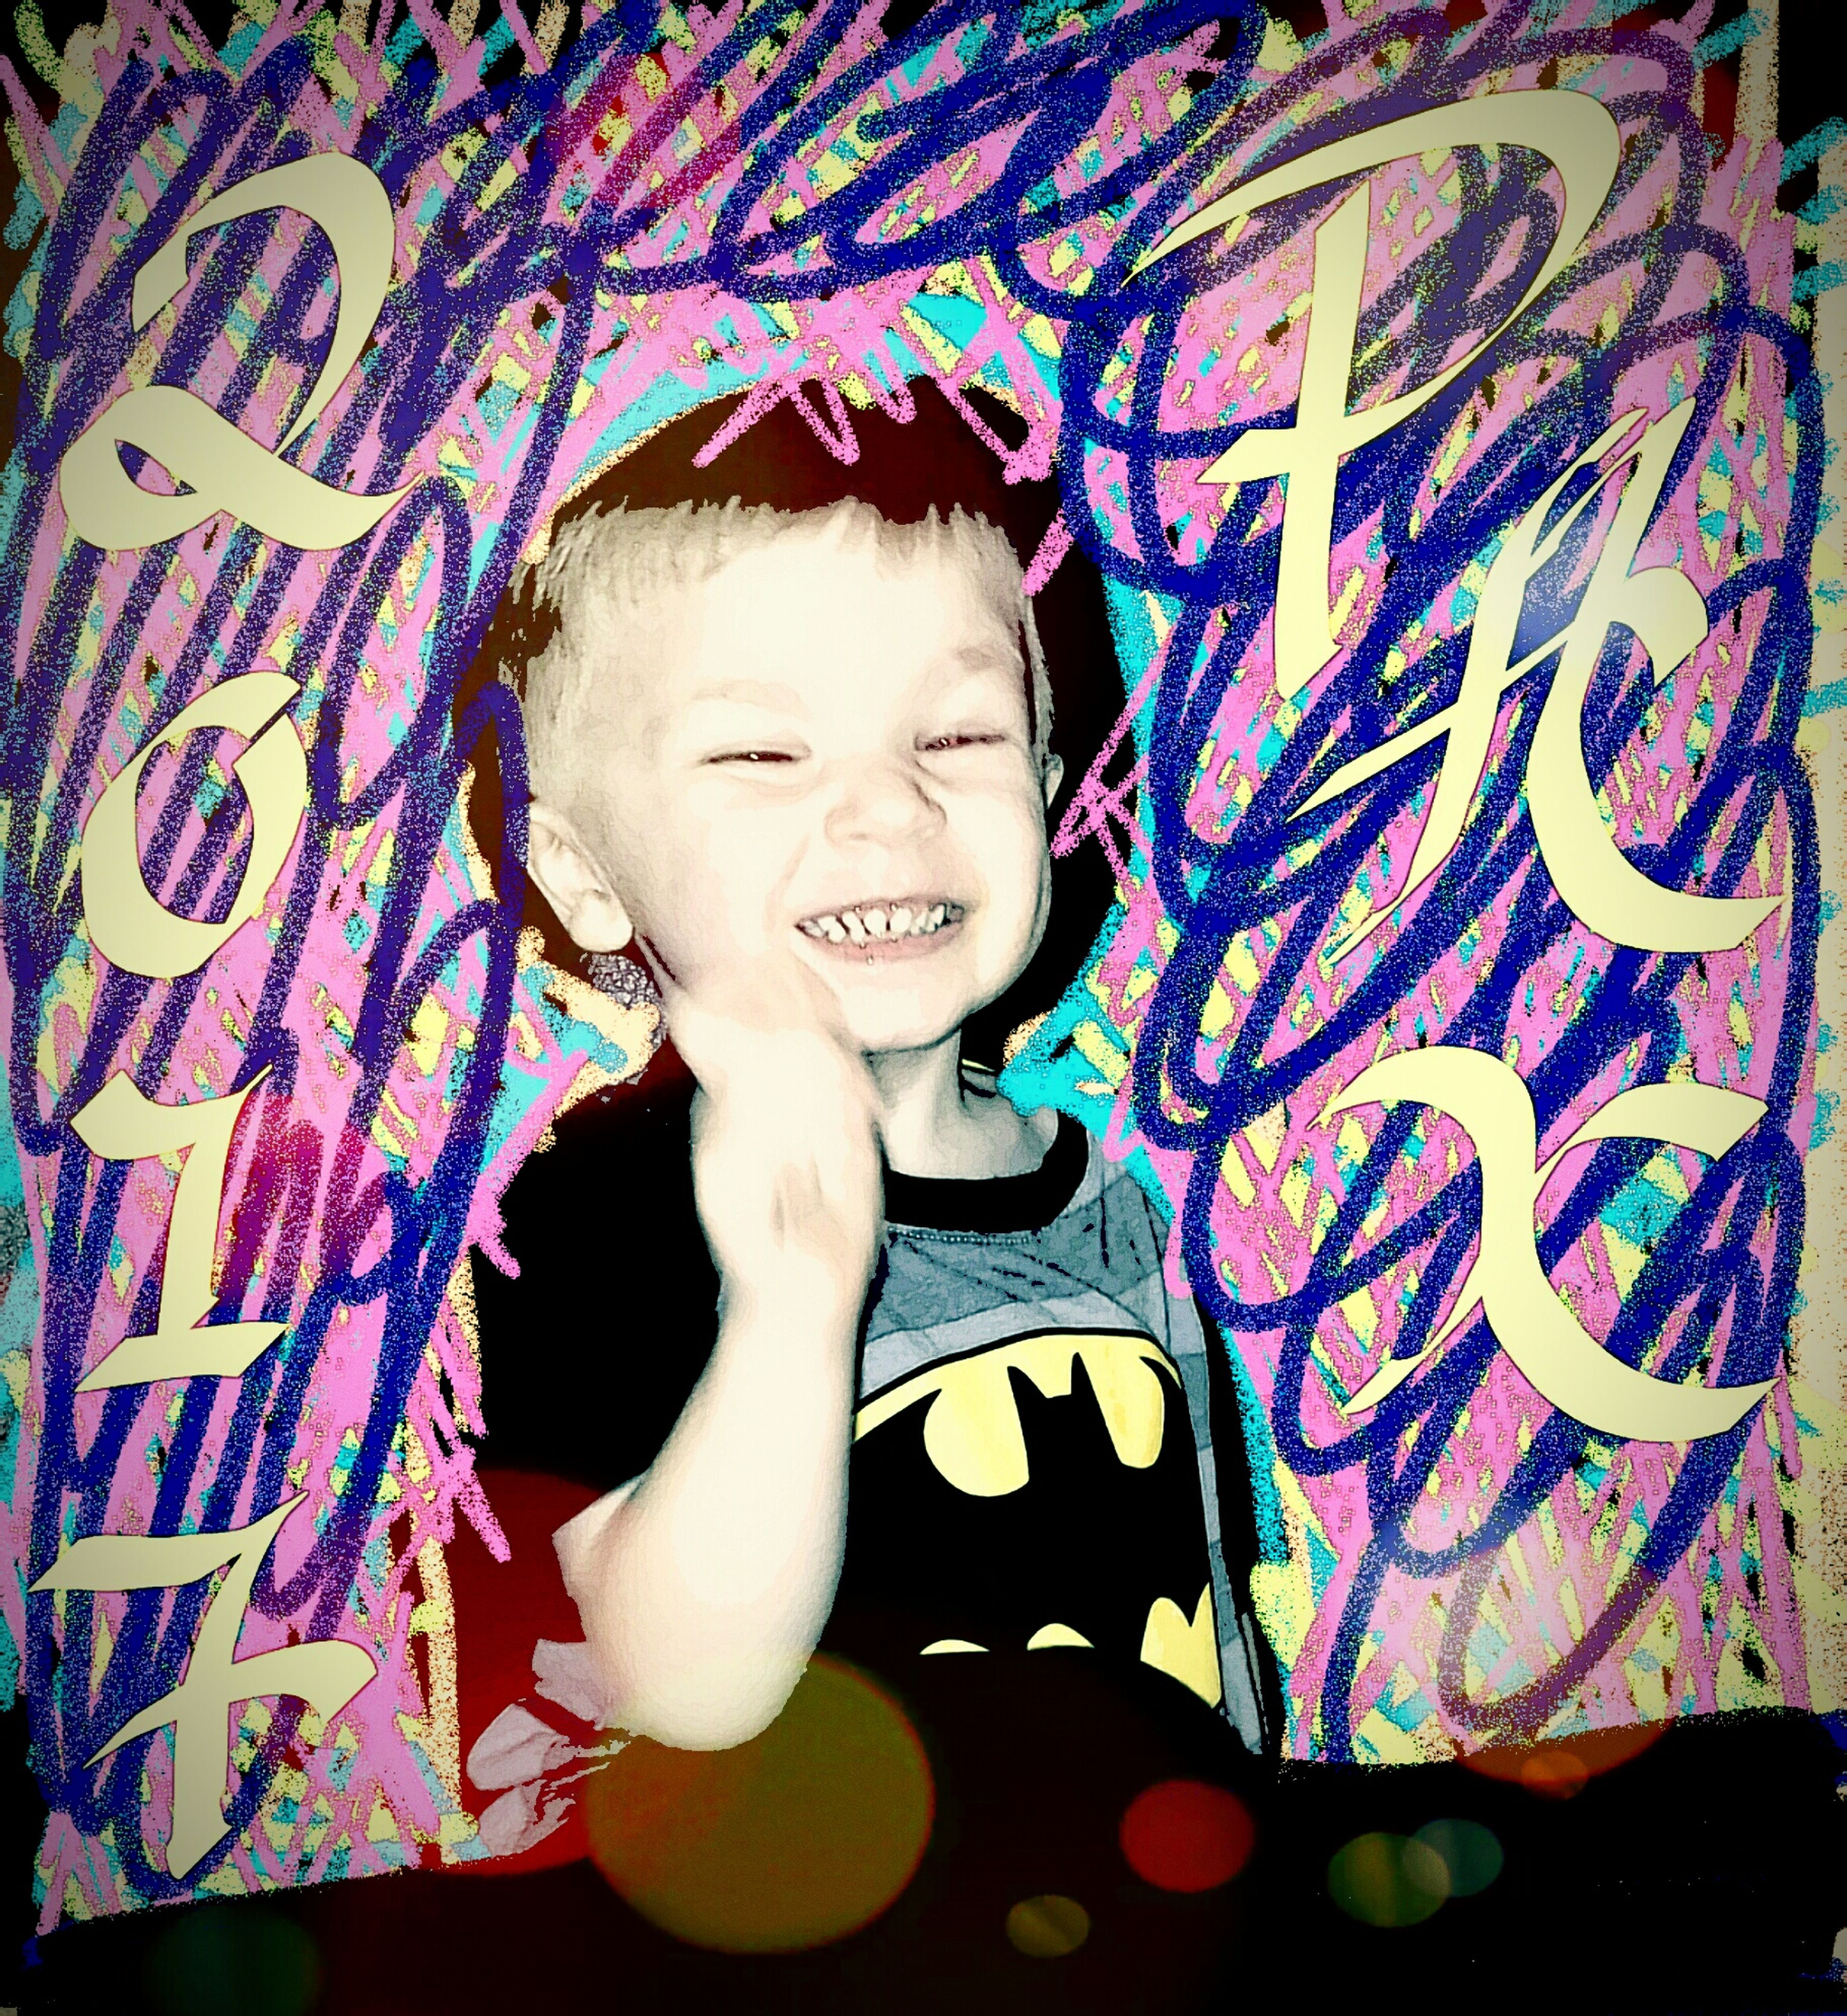 One Person Childhood Child Multi Colored Happiness Real People Indoors  Headshot Portrait Cheerful Smiling One Boy Only Close-up My Sweet Son My Little Man ❤ My Little Man Forever ☺ Cheese Mode Having Fun :) Having Dinner Hanging Out With Grams Sioux Falls South Dakota My Everything My Heart ❤ My Youngest One